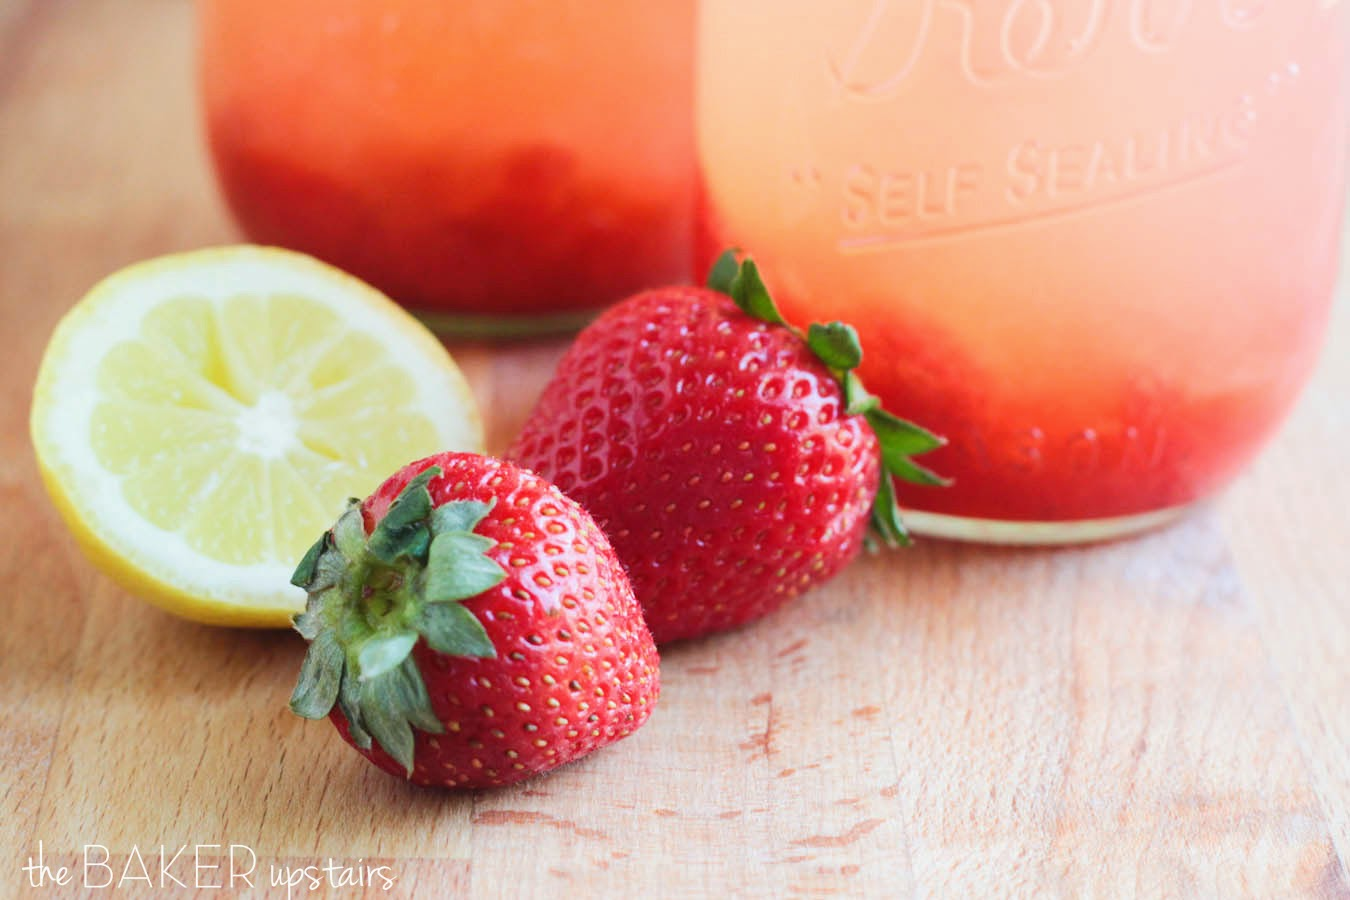 This sweet and refreshing fresh strawberry lemonade is the perfect summer drink!